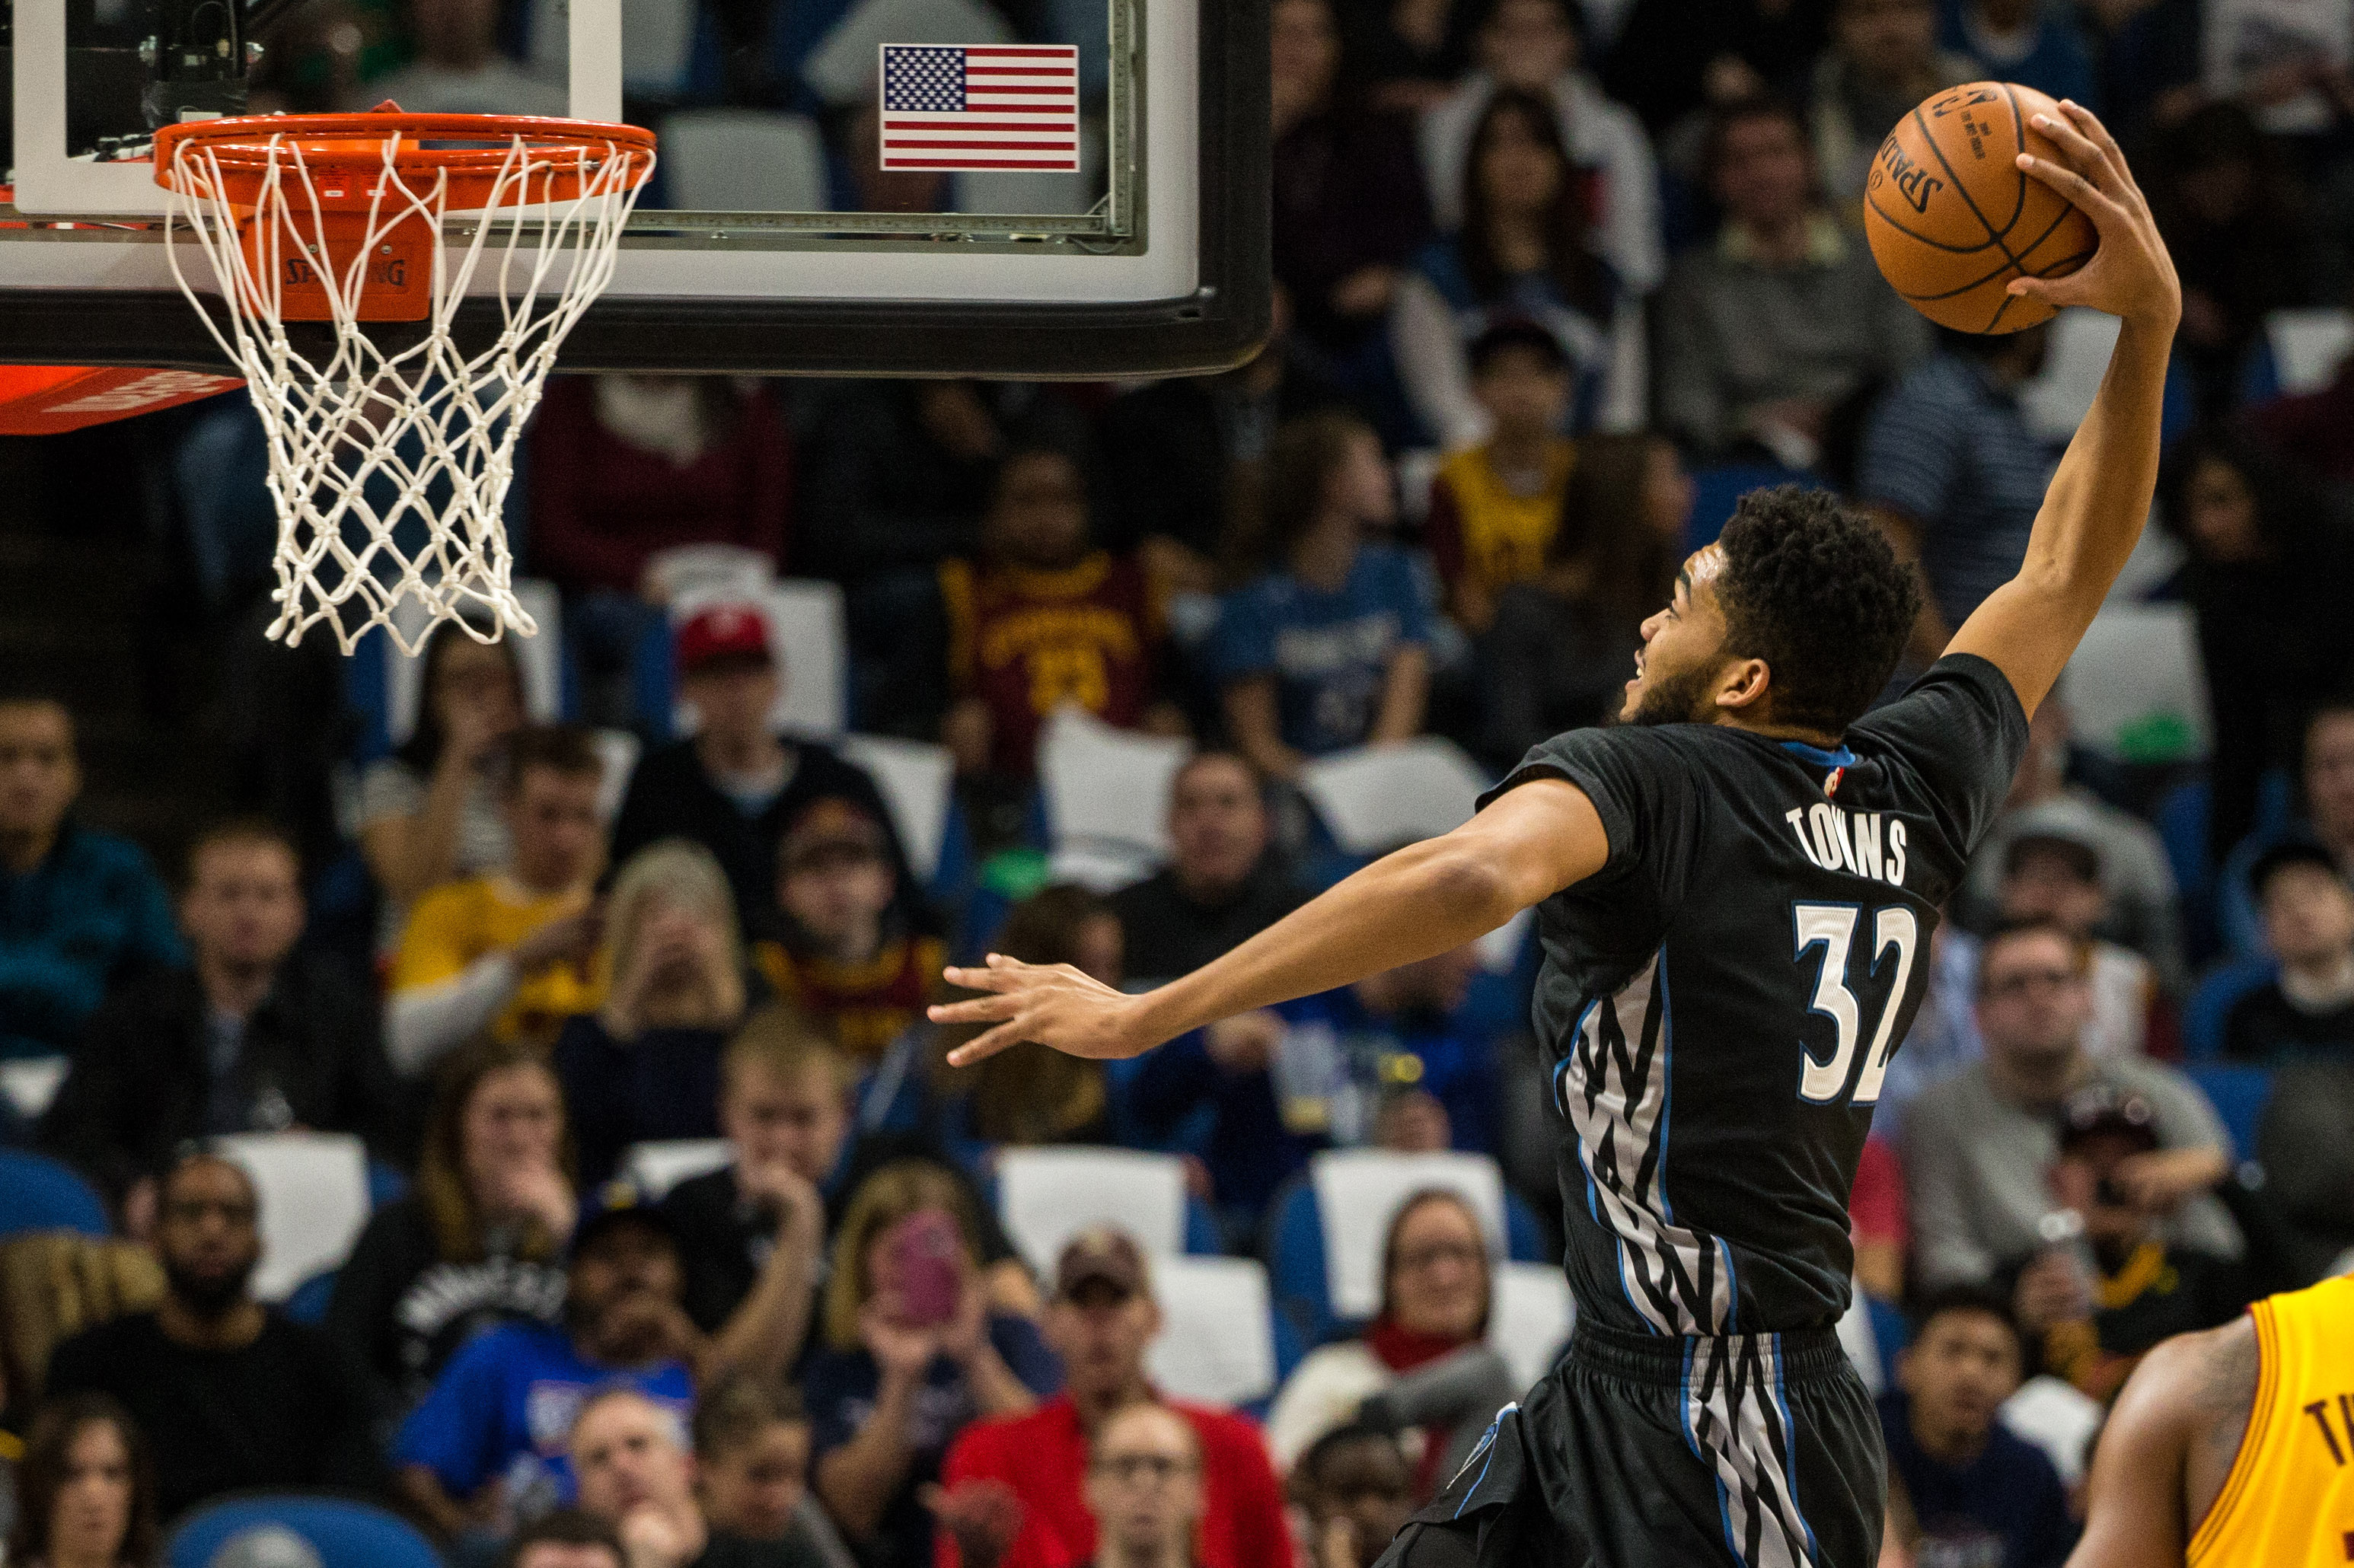 Feb 14, 2017; Minneapolis, MN, USA; Minnesota Timberwolves forward Karl-Anthony Towns (32) dunks during the first quarter against the Cleveland Cavaliers at Target Center. Mandatory Credit: Brace Hemmelgarn-USA TODAY Sports